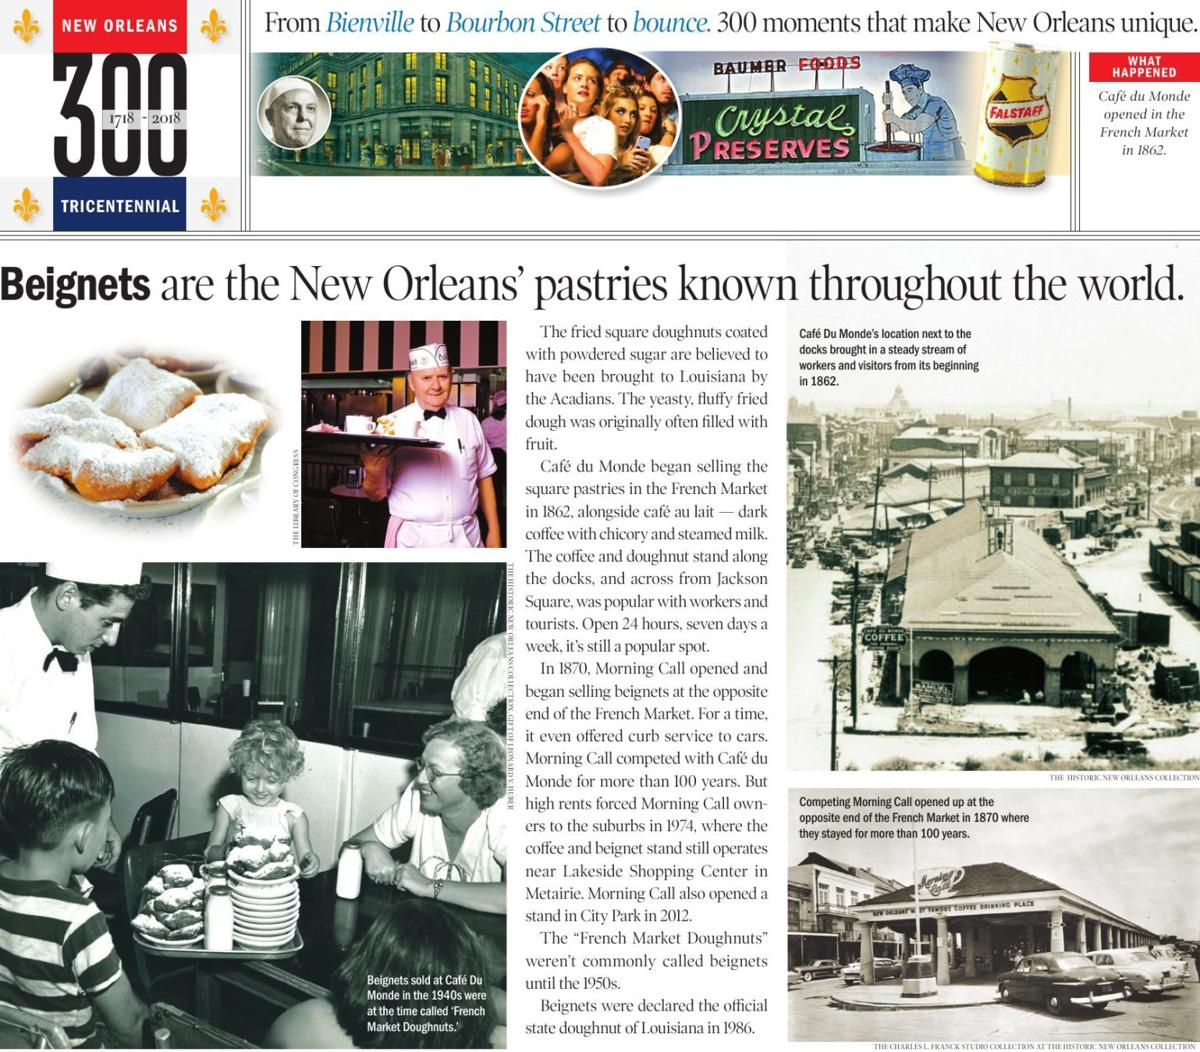 300: Café du Monde opened in the French Market in 1862